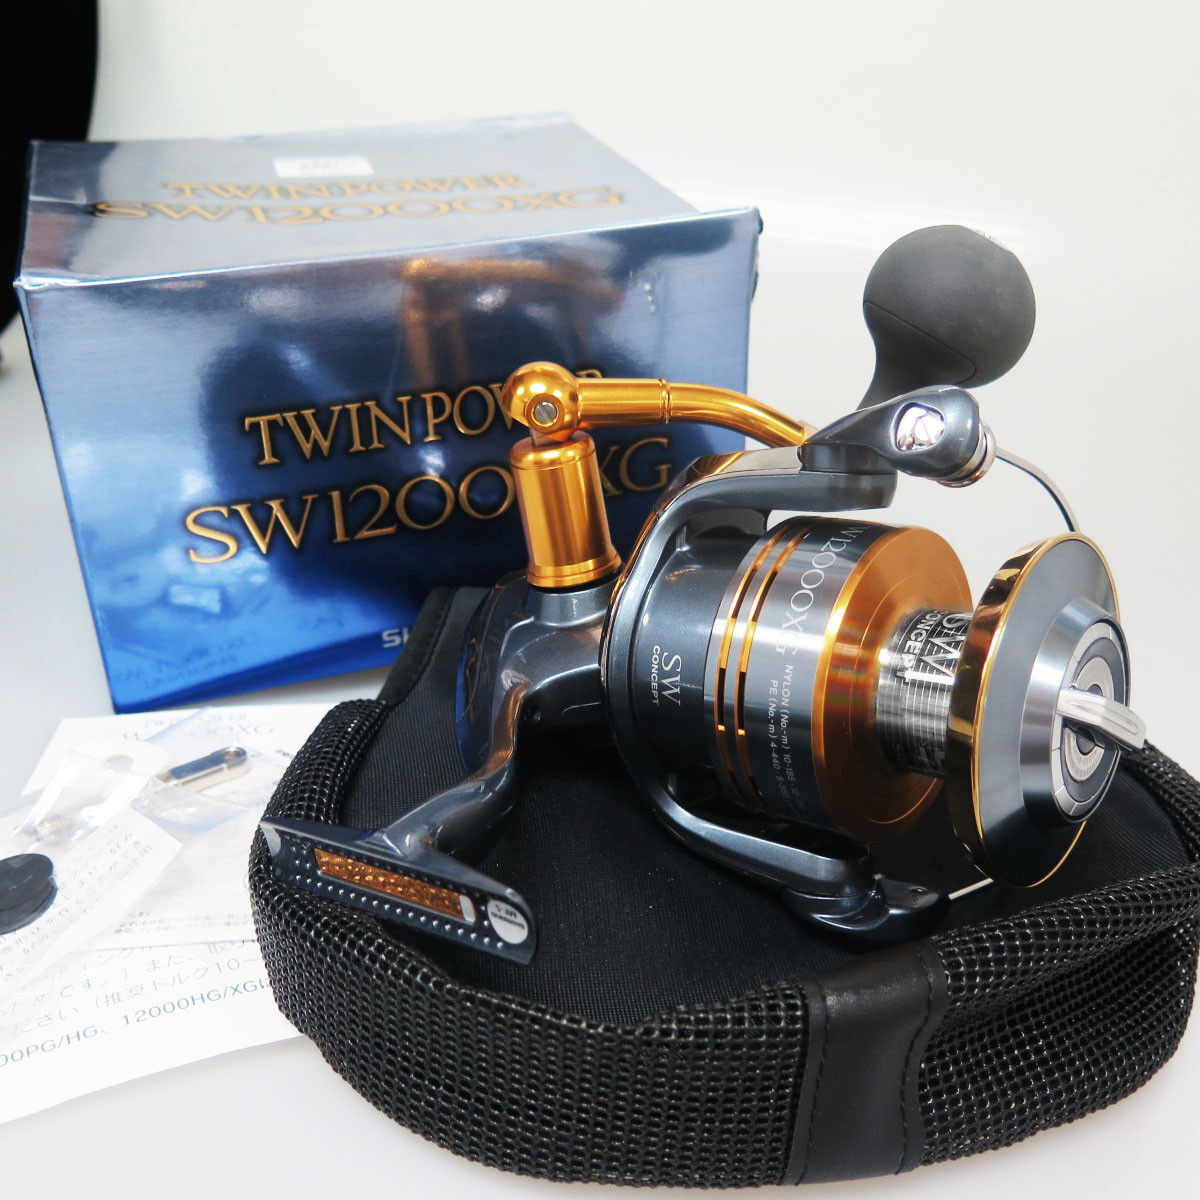 SHIMANO TWINPOWER SW12000XG Reel TWIN POWER SW 12000 XG Made In Japan